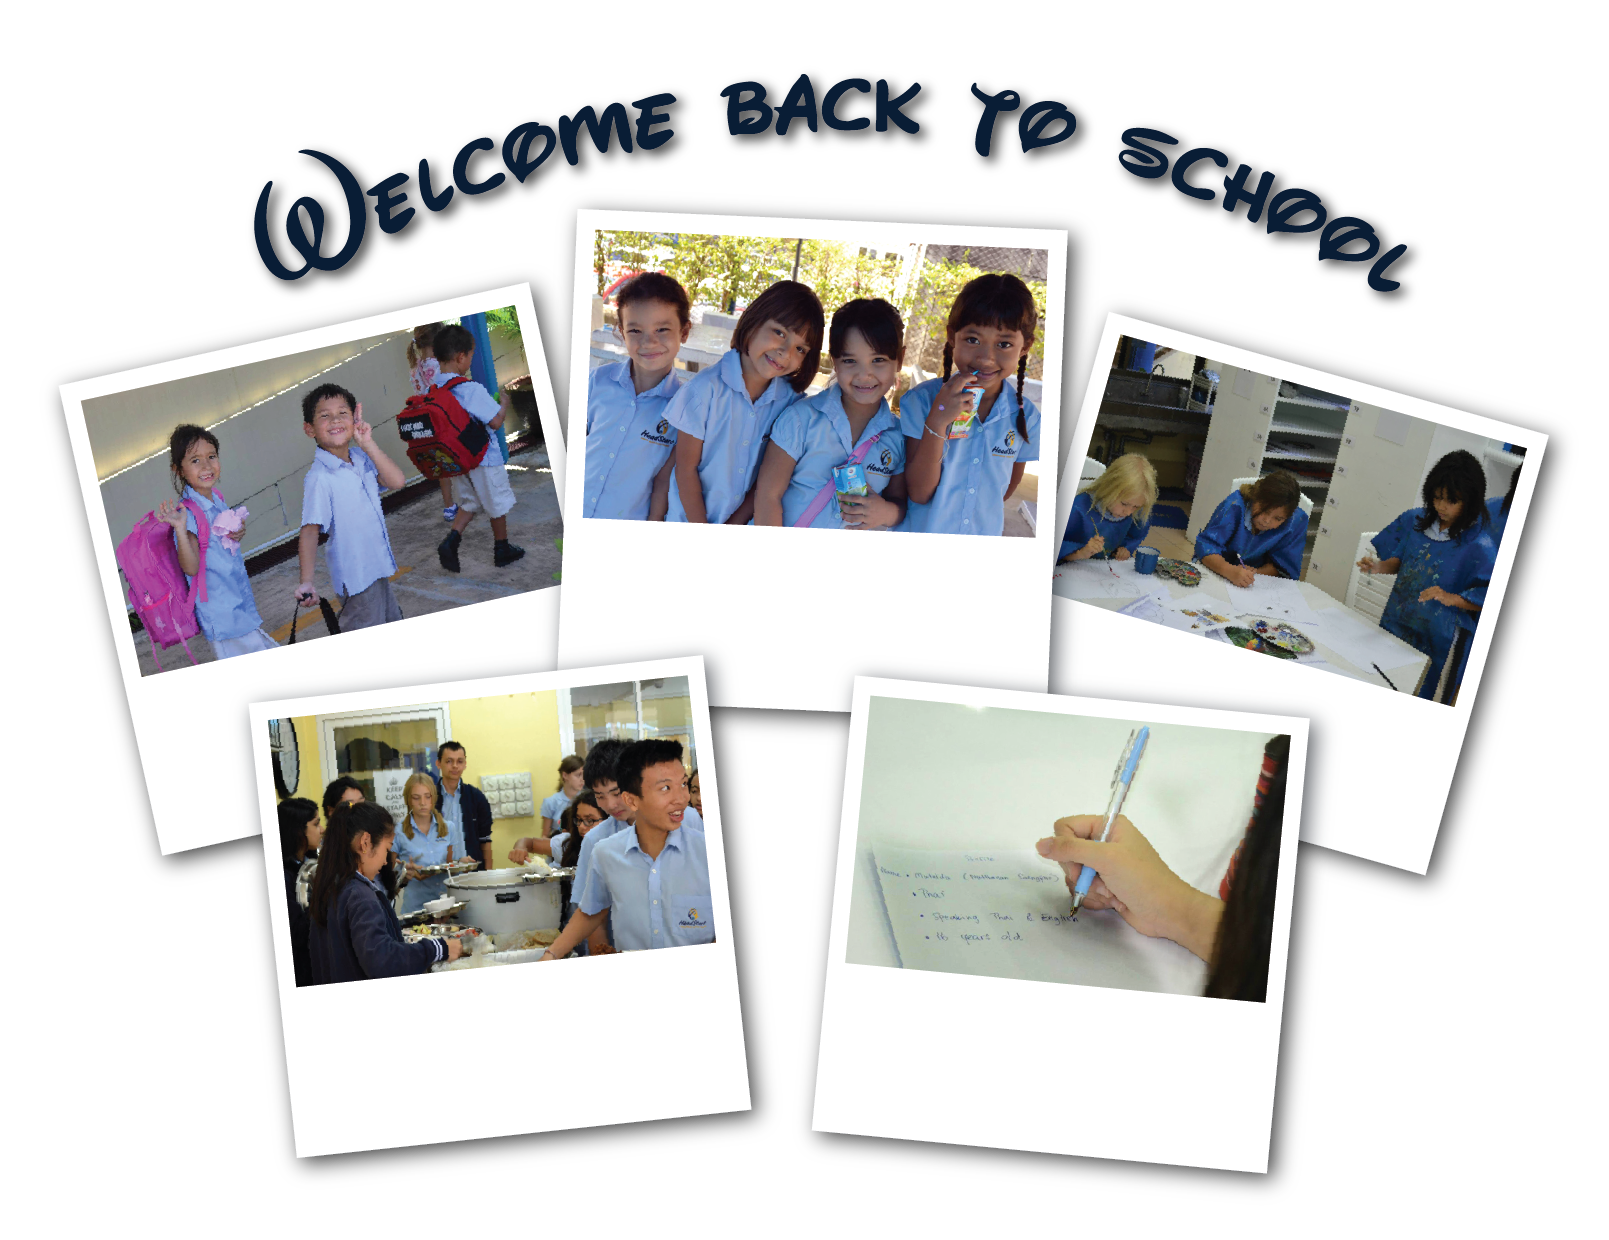 back to school 01 01